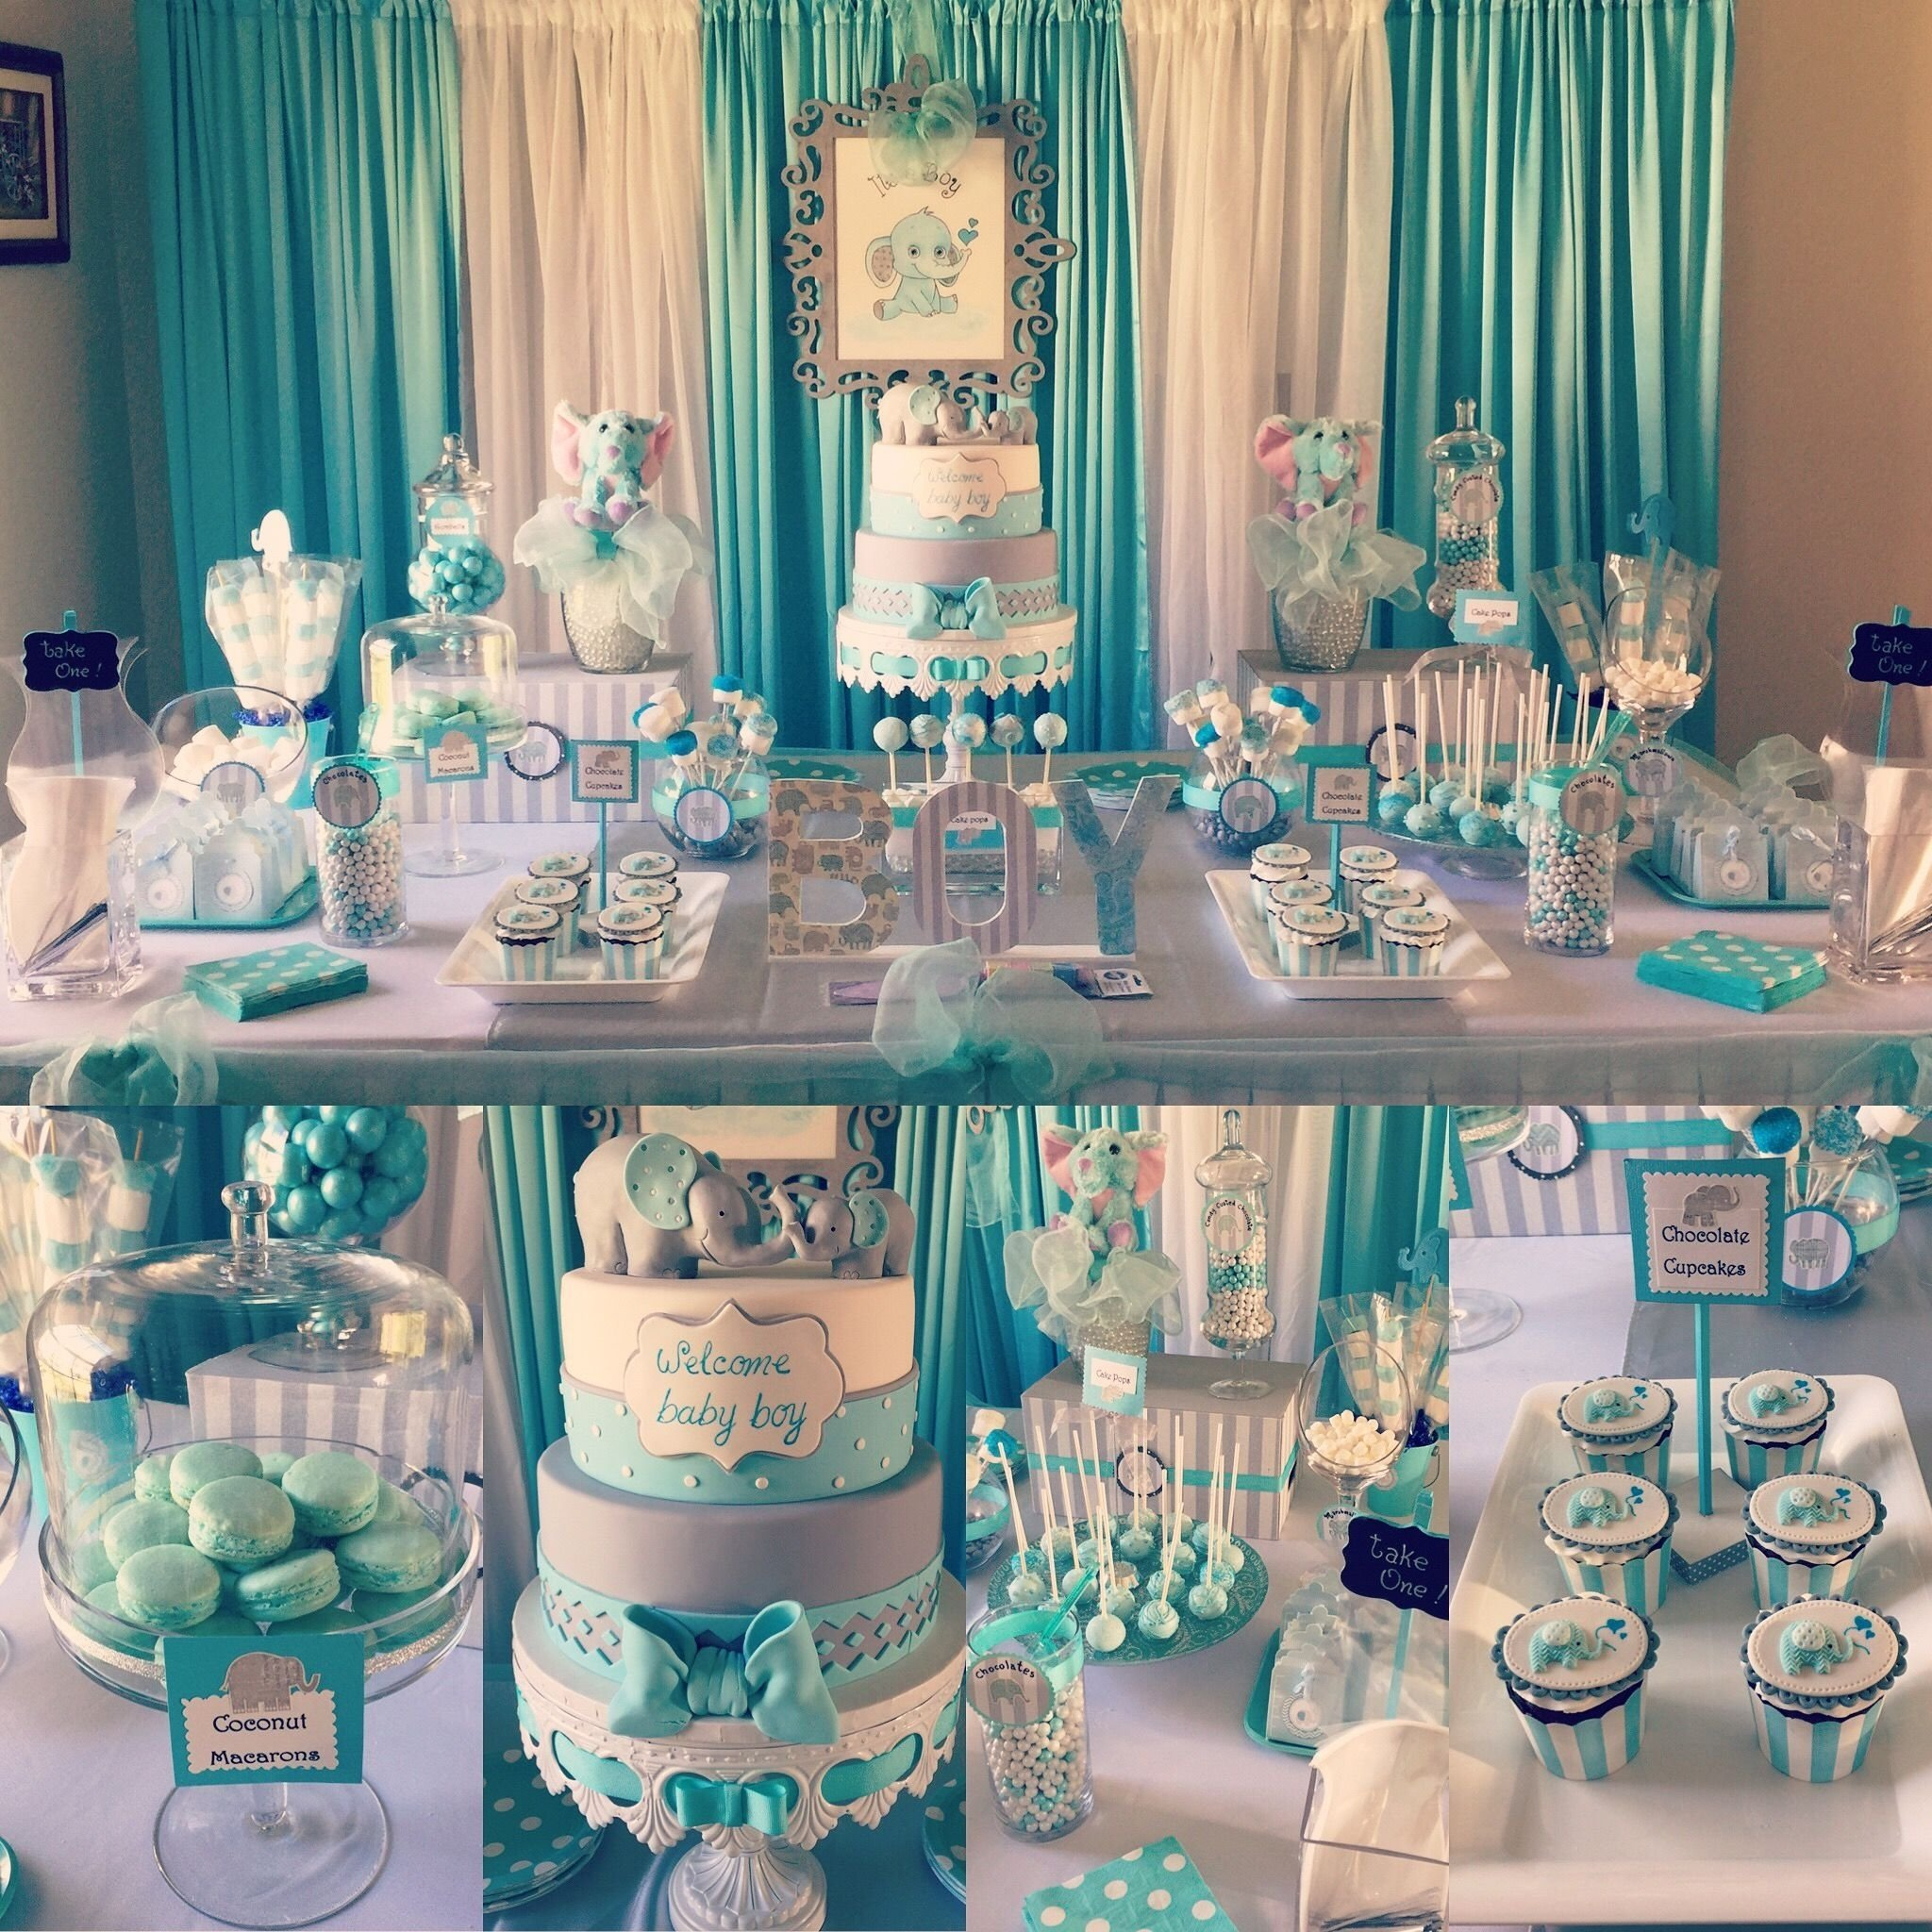 10 Lovable Boy Themed Baby Shower Ideas unique gender reveal party ideas that wont empty your wallet 9 2020